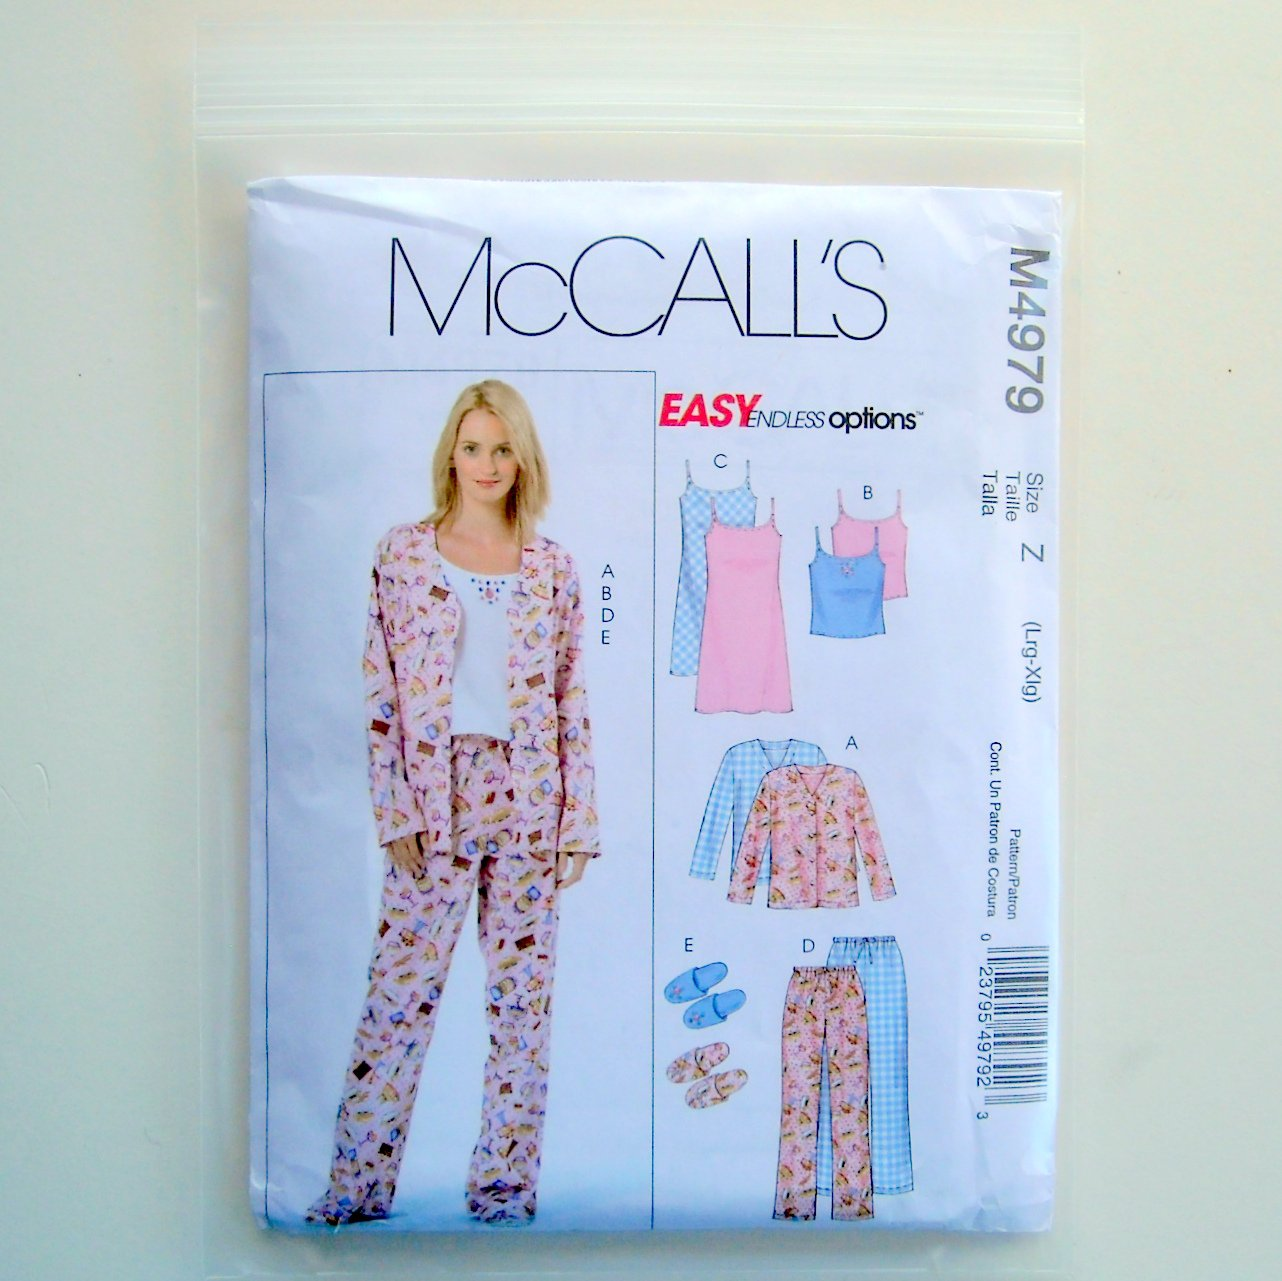 Misses Petite Top Nightgown Pants Slippers McCalls Easy Sewing Pattern M4979